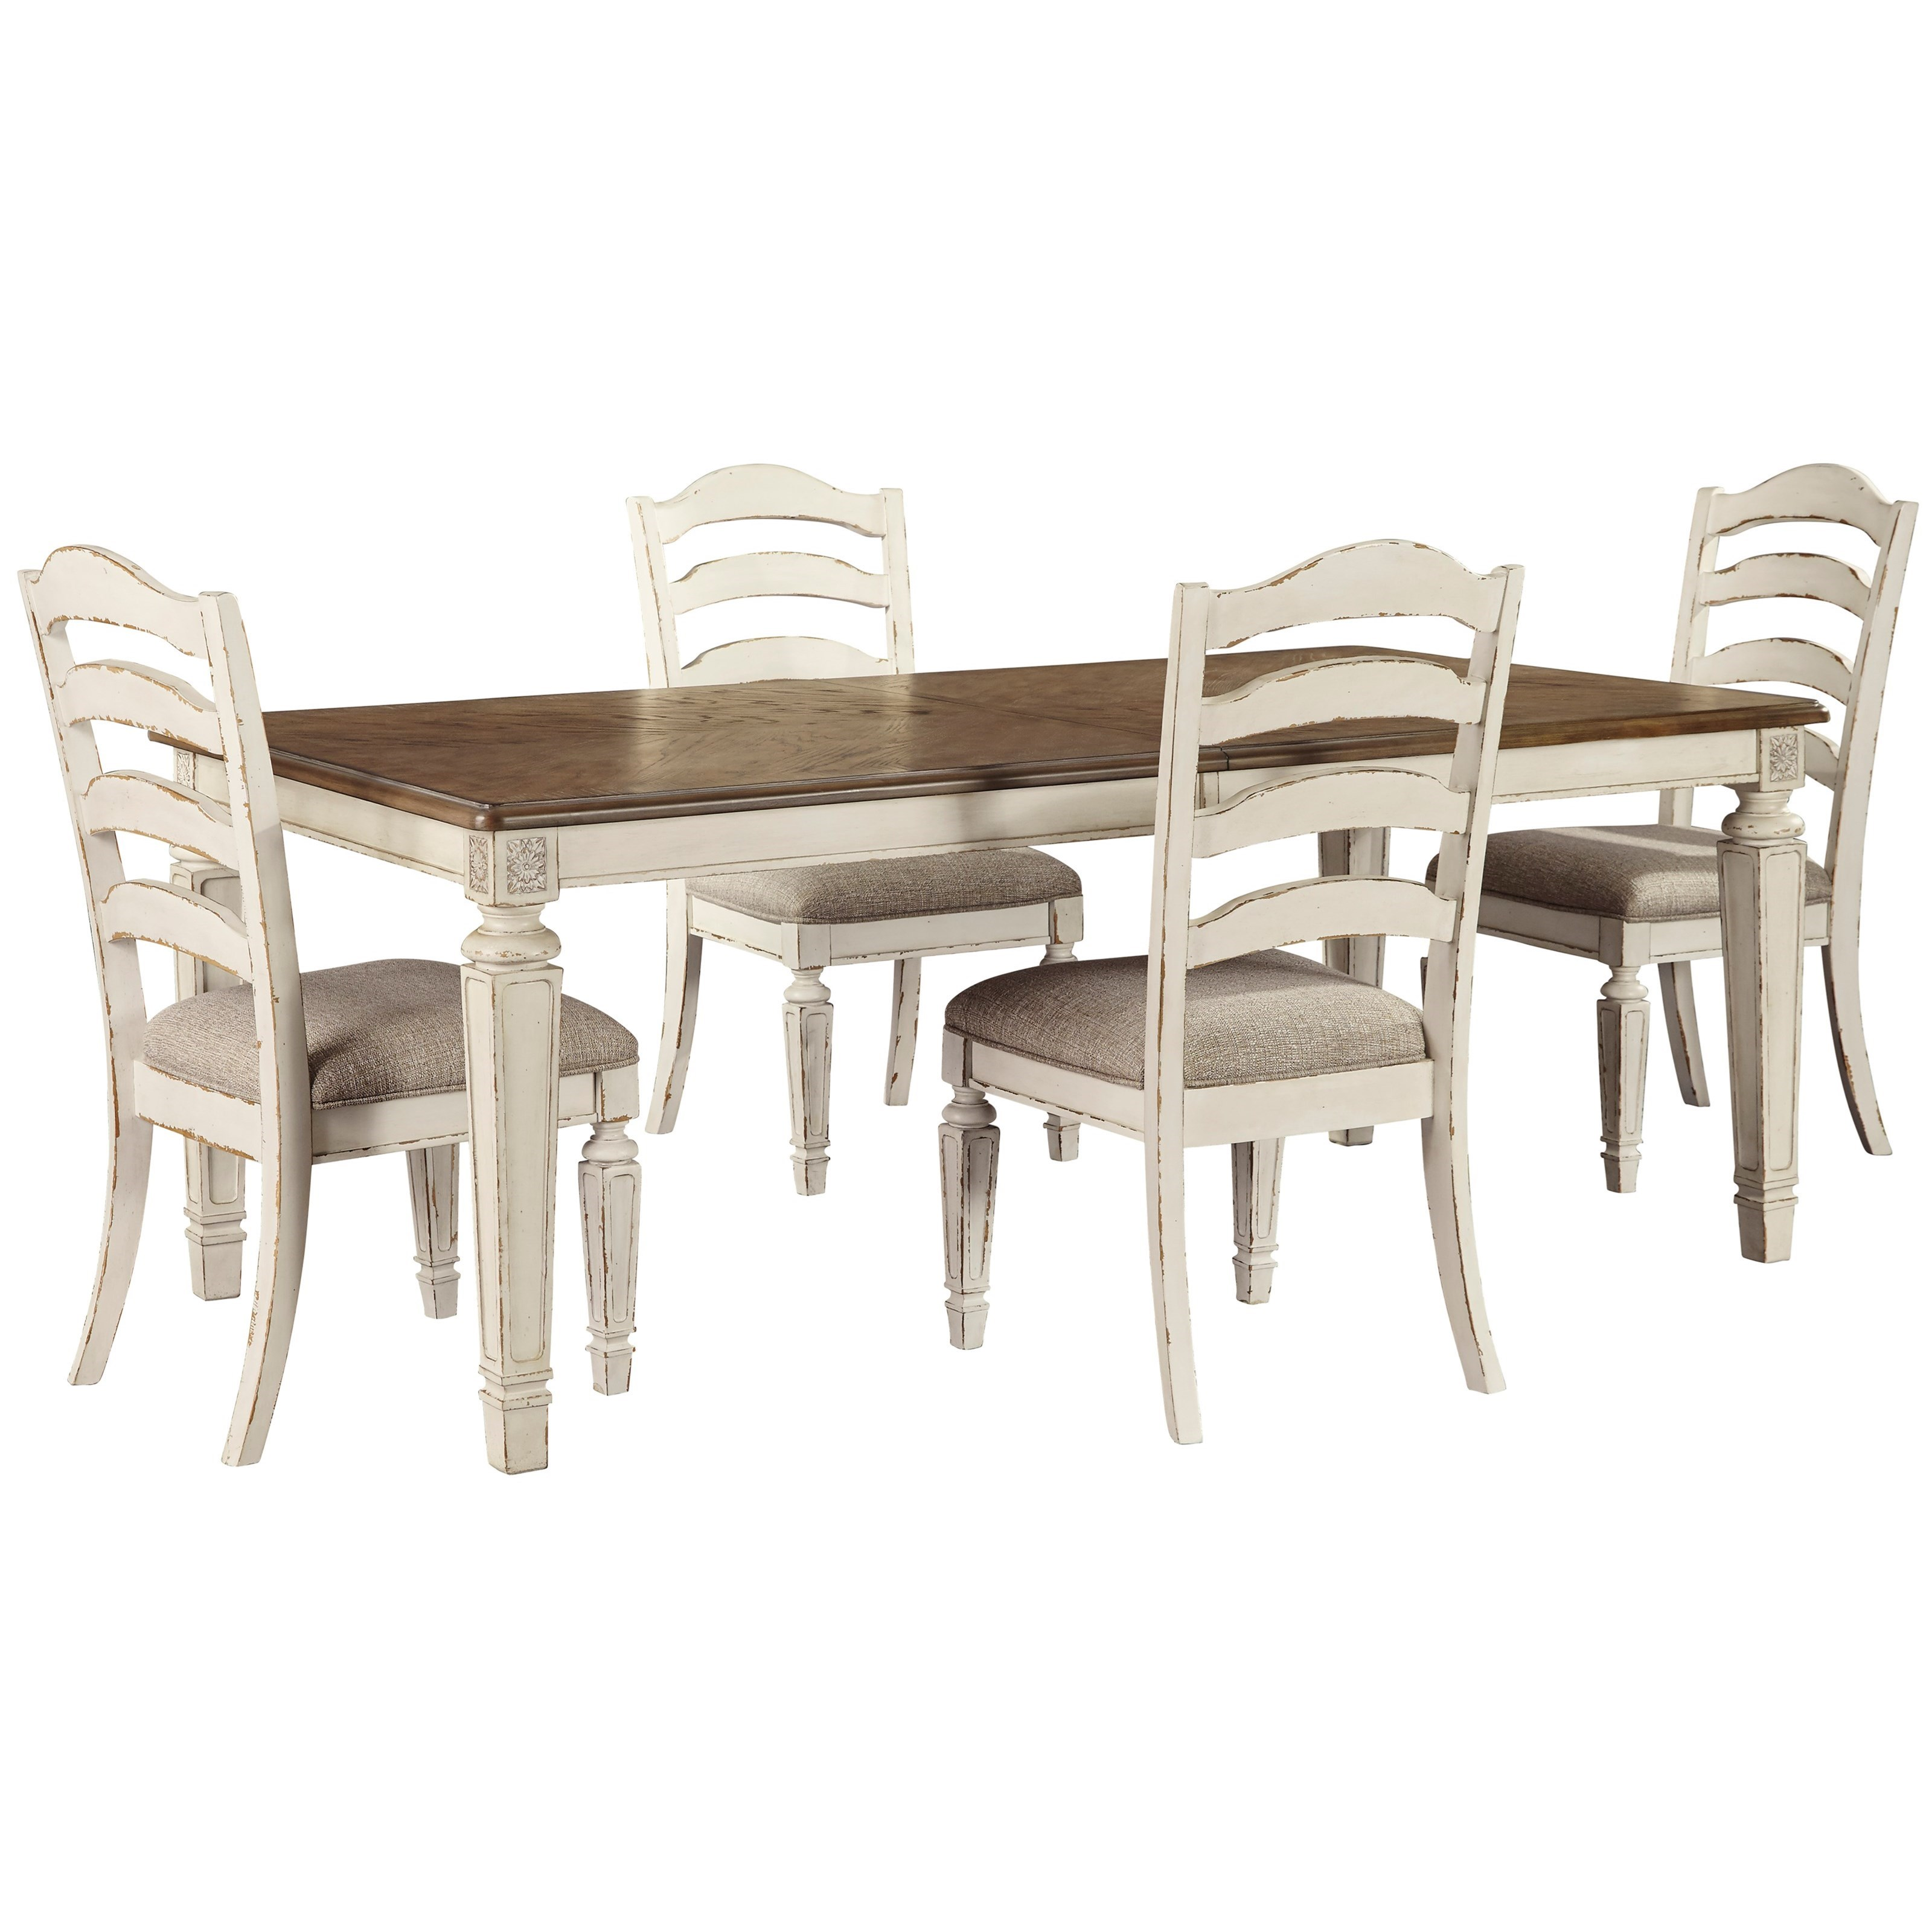 Realyn 5-Piece Dining Set by Signature Design by Ashley at HomeWorld Furniture